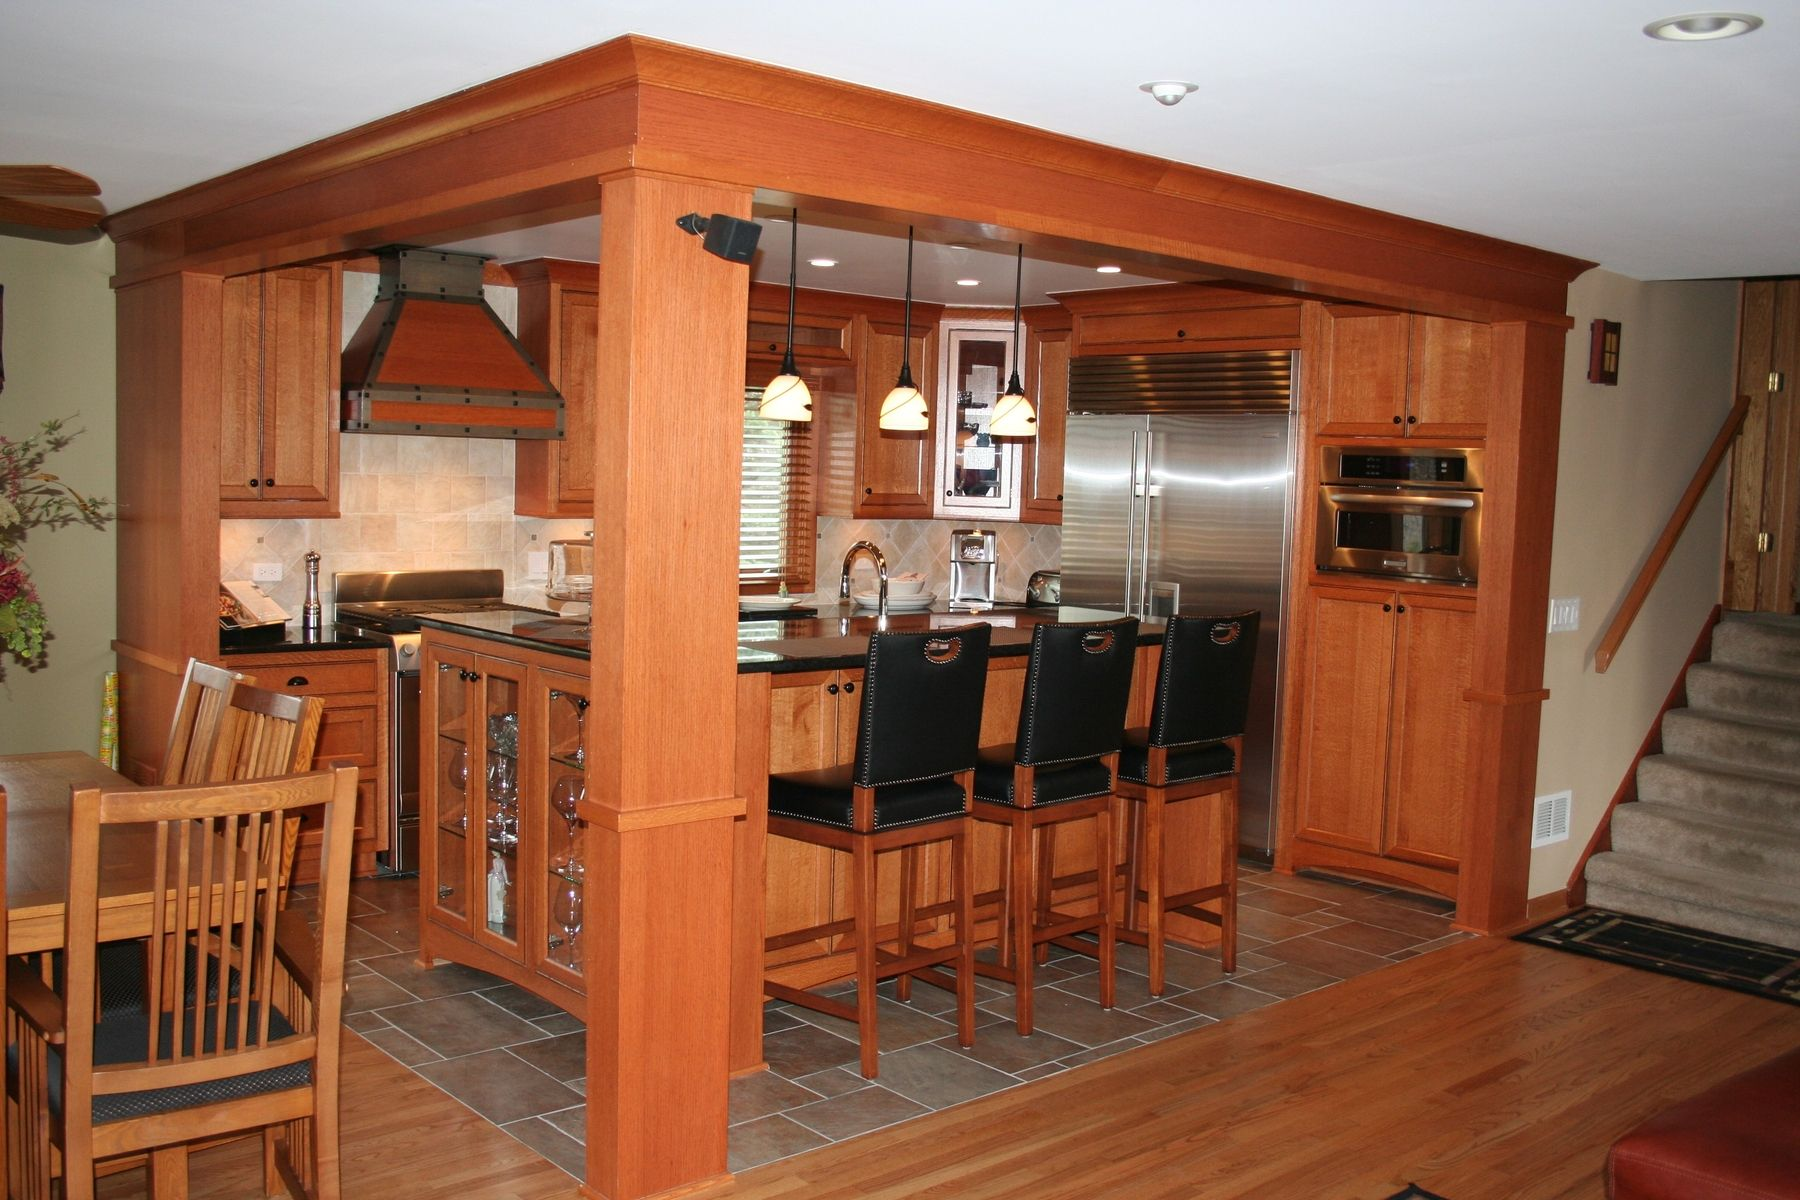 Custom Made Cabinets Handmade Custom Quarter Sawn Oak Kitchen Cabinets By Jr 39s